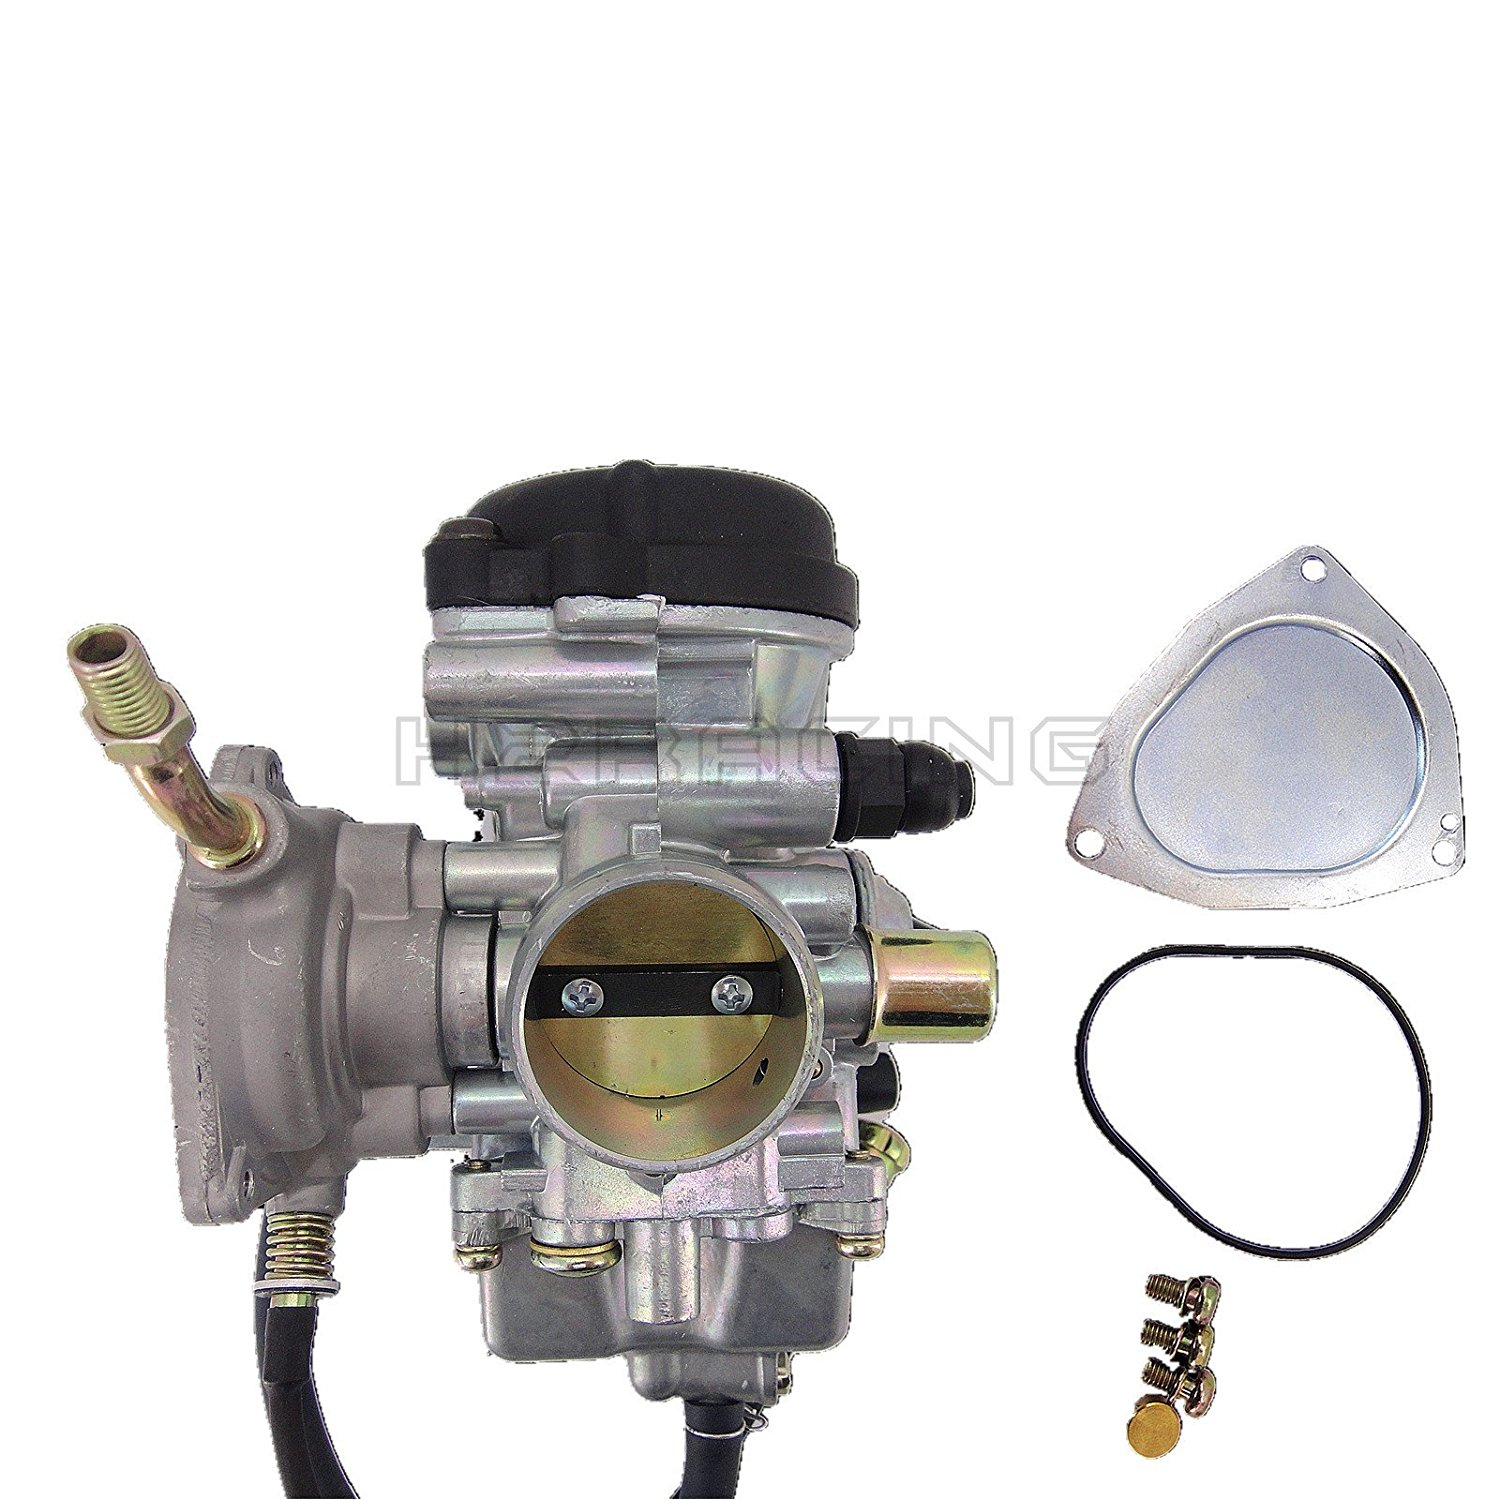 ATV Carburetor Assembly Compatible for Yamaha Big Bear 400 /& Kodiak YFM 400 /& Grizzly 350 450 /& Wolverine 350 450 4x4